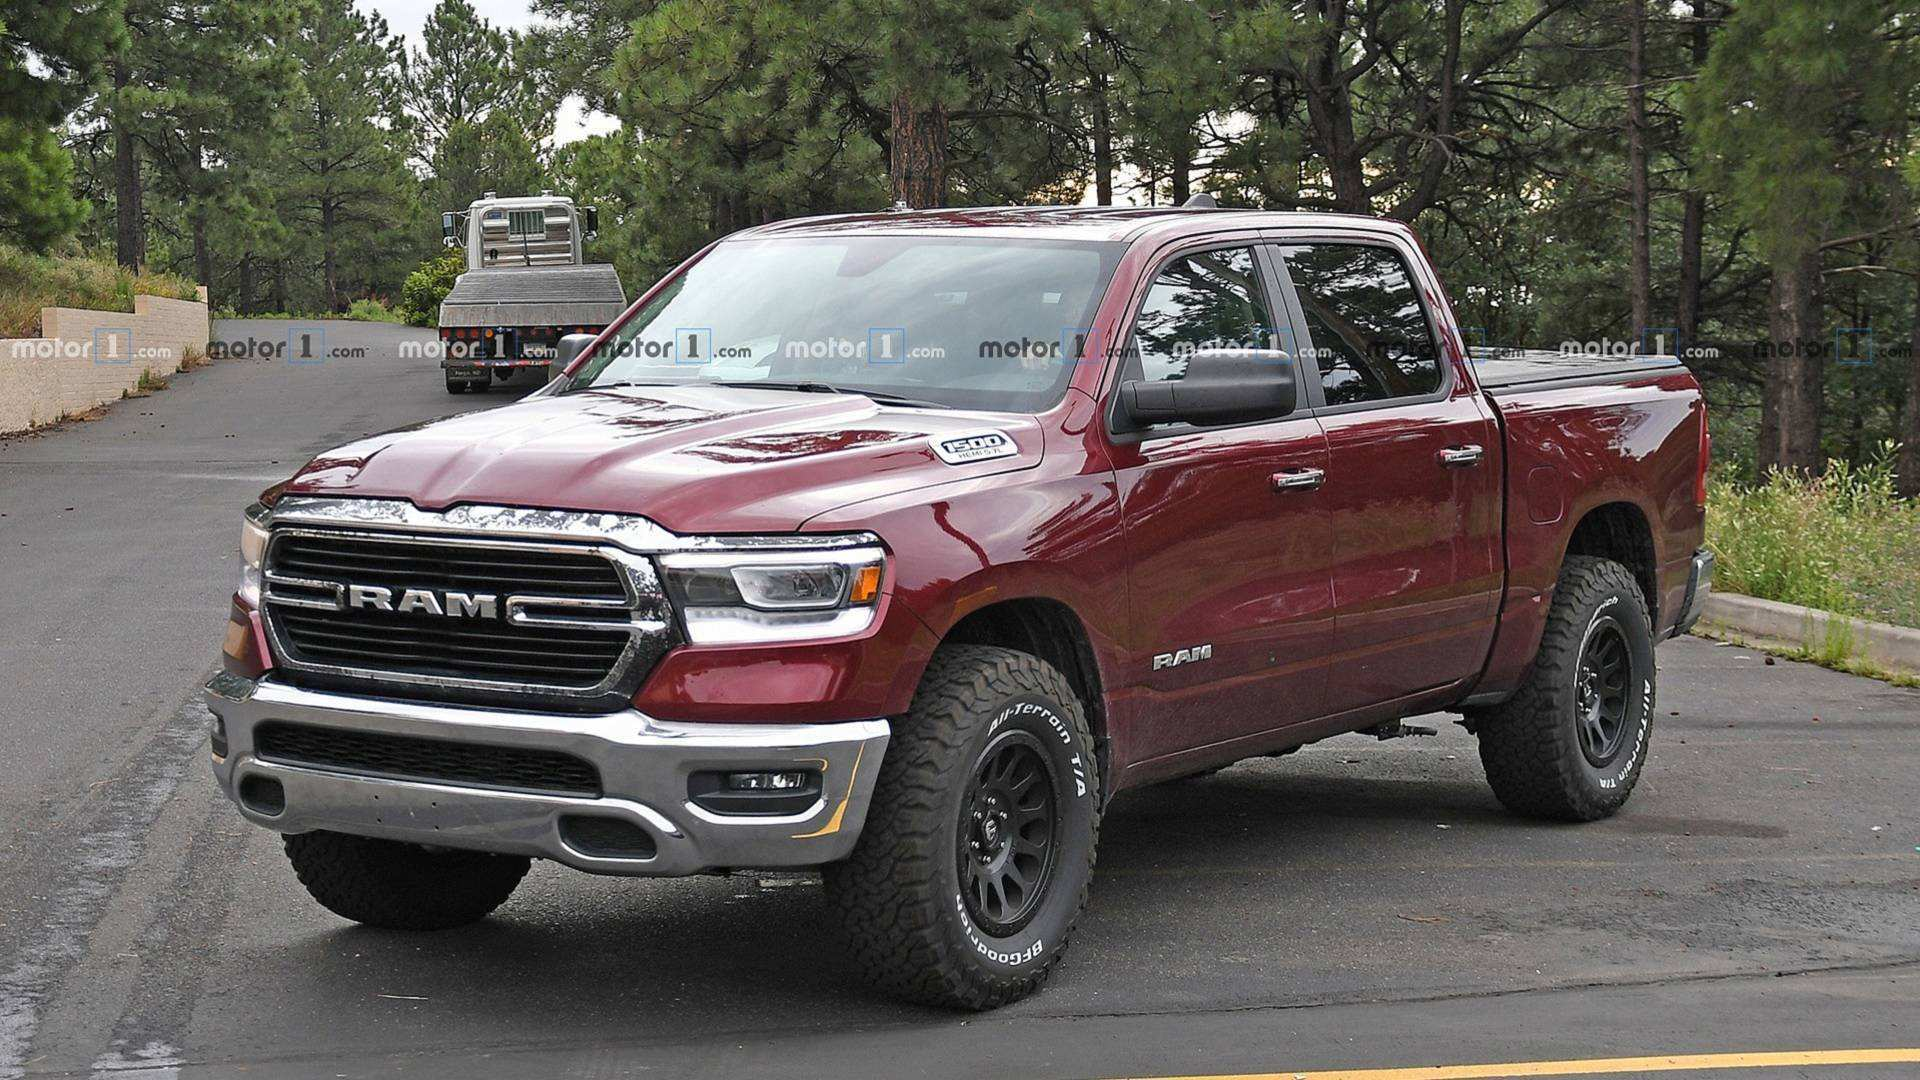 47 All New 2020 Dodge Ram 1500 Release Date